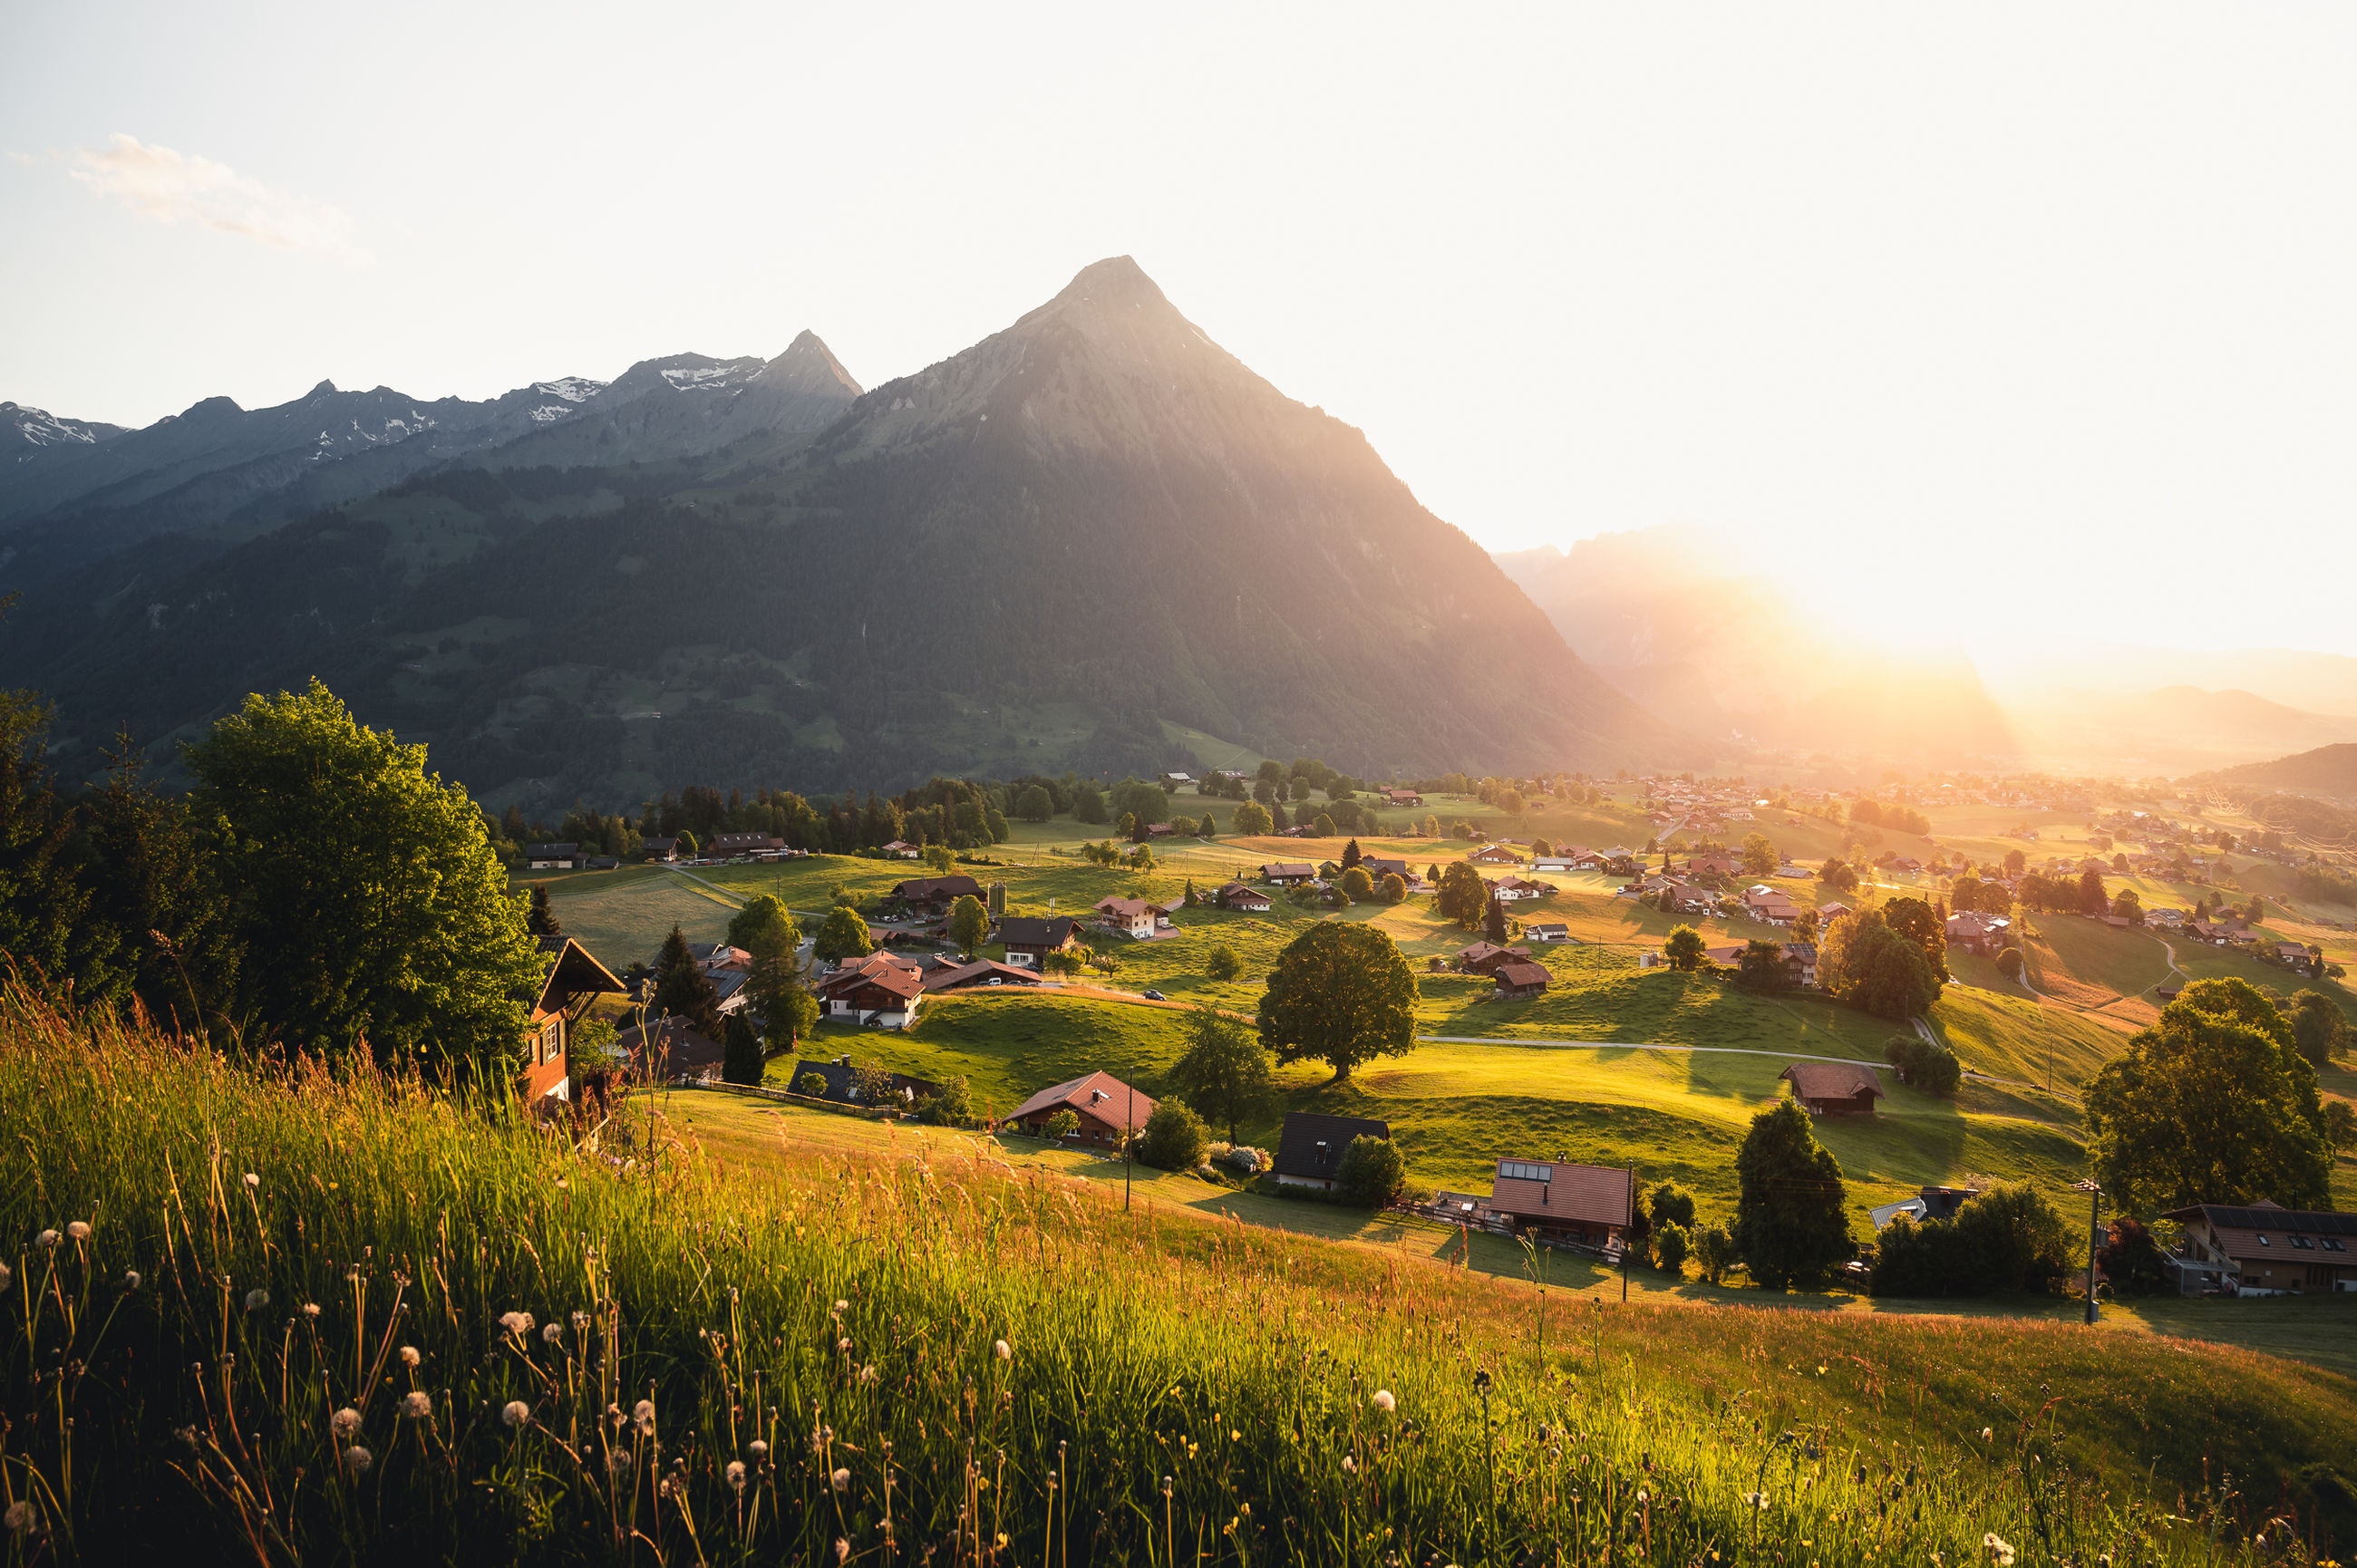 mountain, sky, scenics - nature, plant, landscape, beauty in nature, environment, tree, tranquil scene, field, nature, tranquility, mountain range, land, architecture, growth, grass, built structure, green color, rural scene, outdoors, no people, lens flare